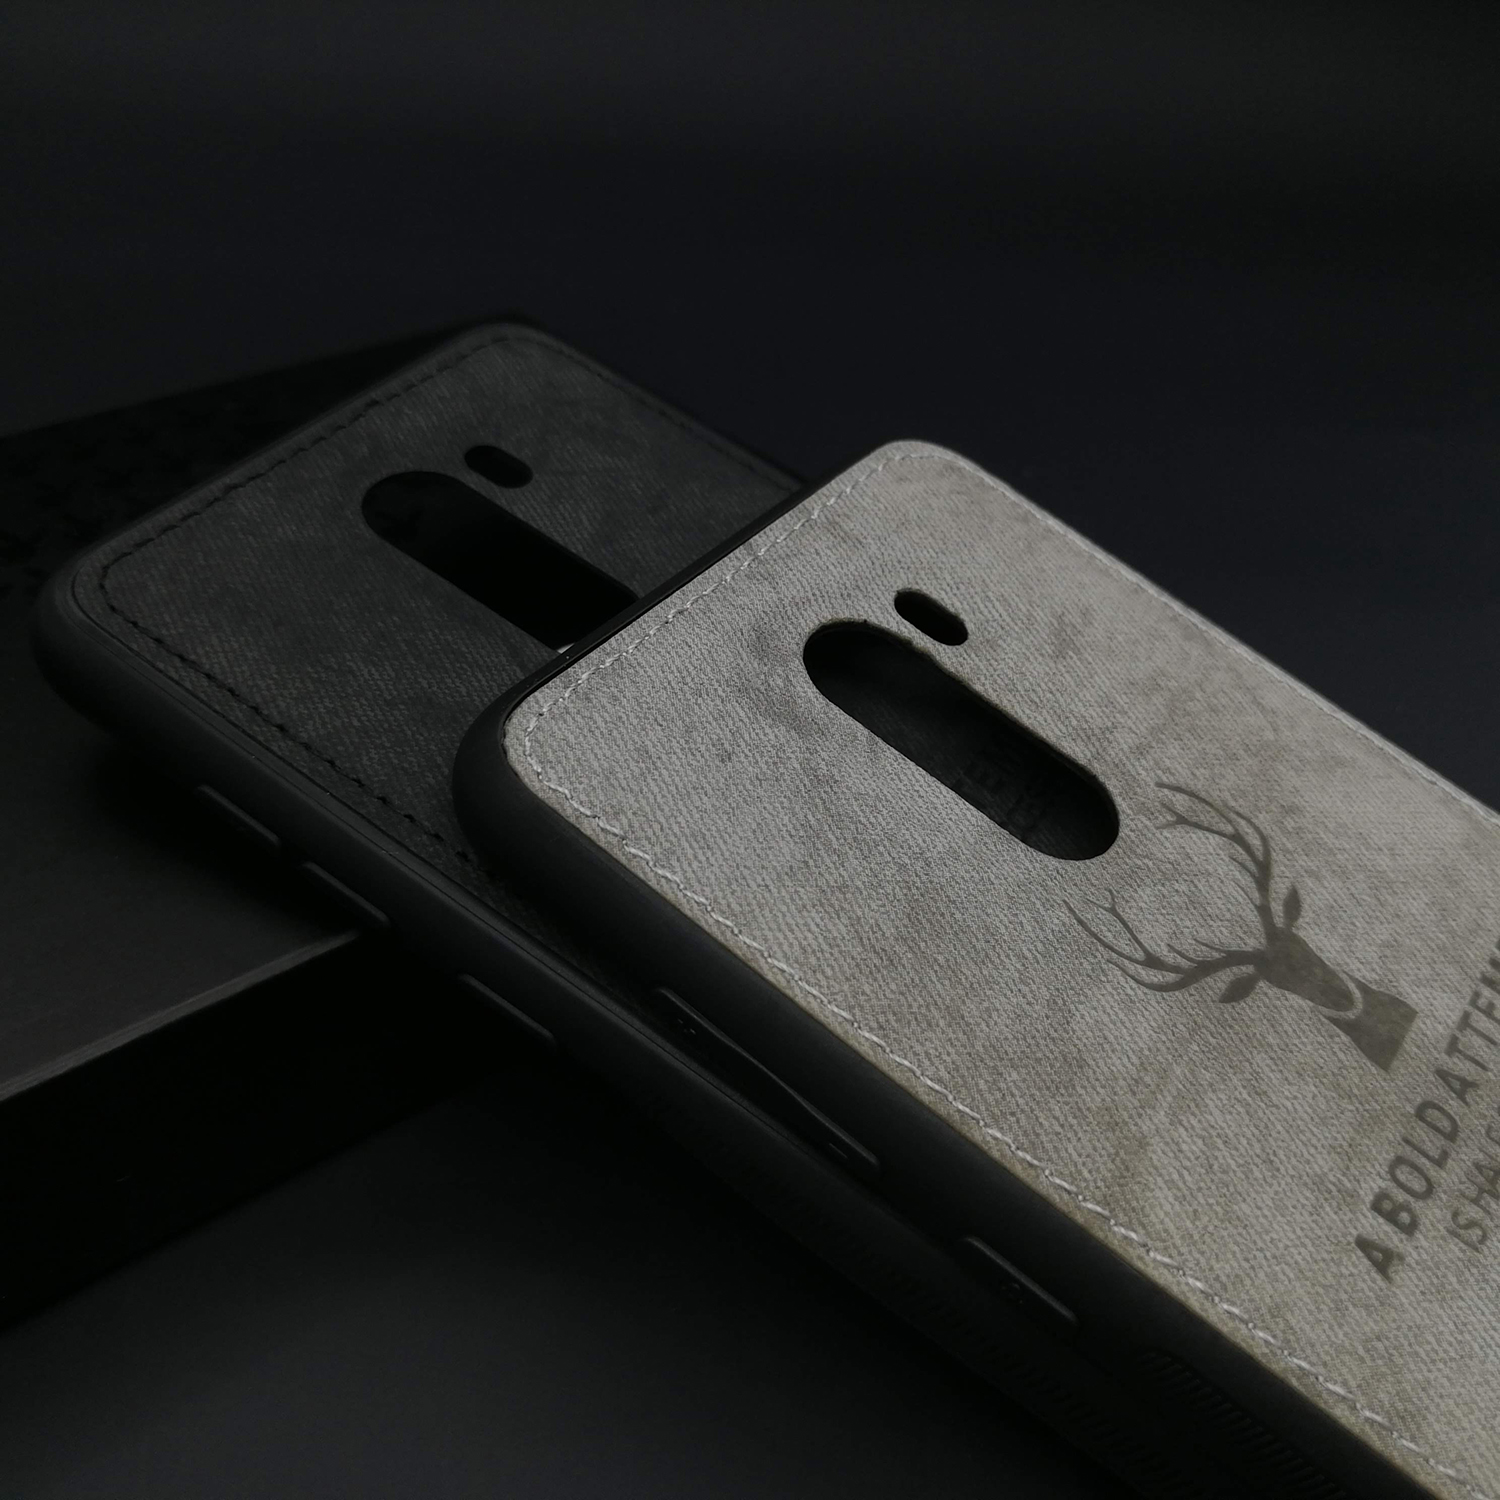 Casing Metal Aluminium Bumper Mirror for Xiaomi Redmi Note 3 - Black. Source .